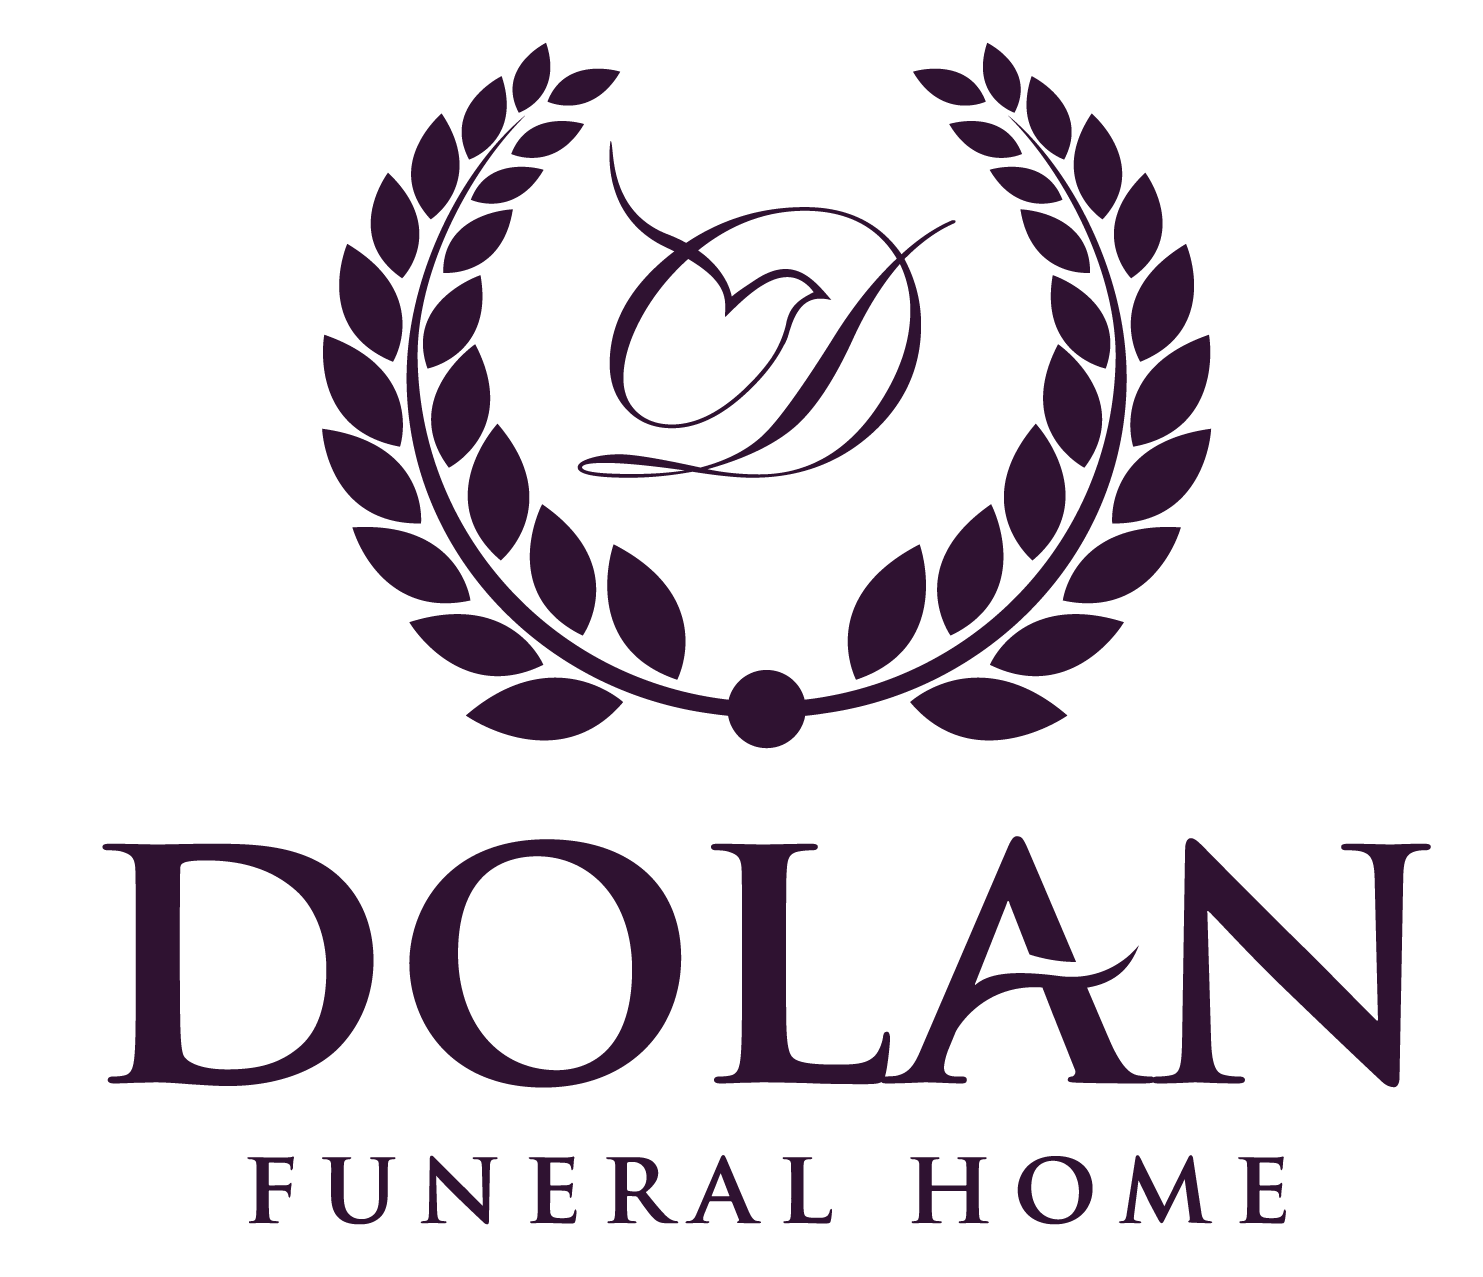 Dolan Funeral Home | Obituaries - Funeral Services In Chelmsford ...